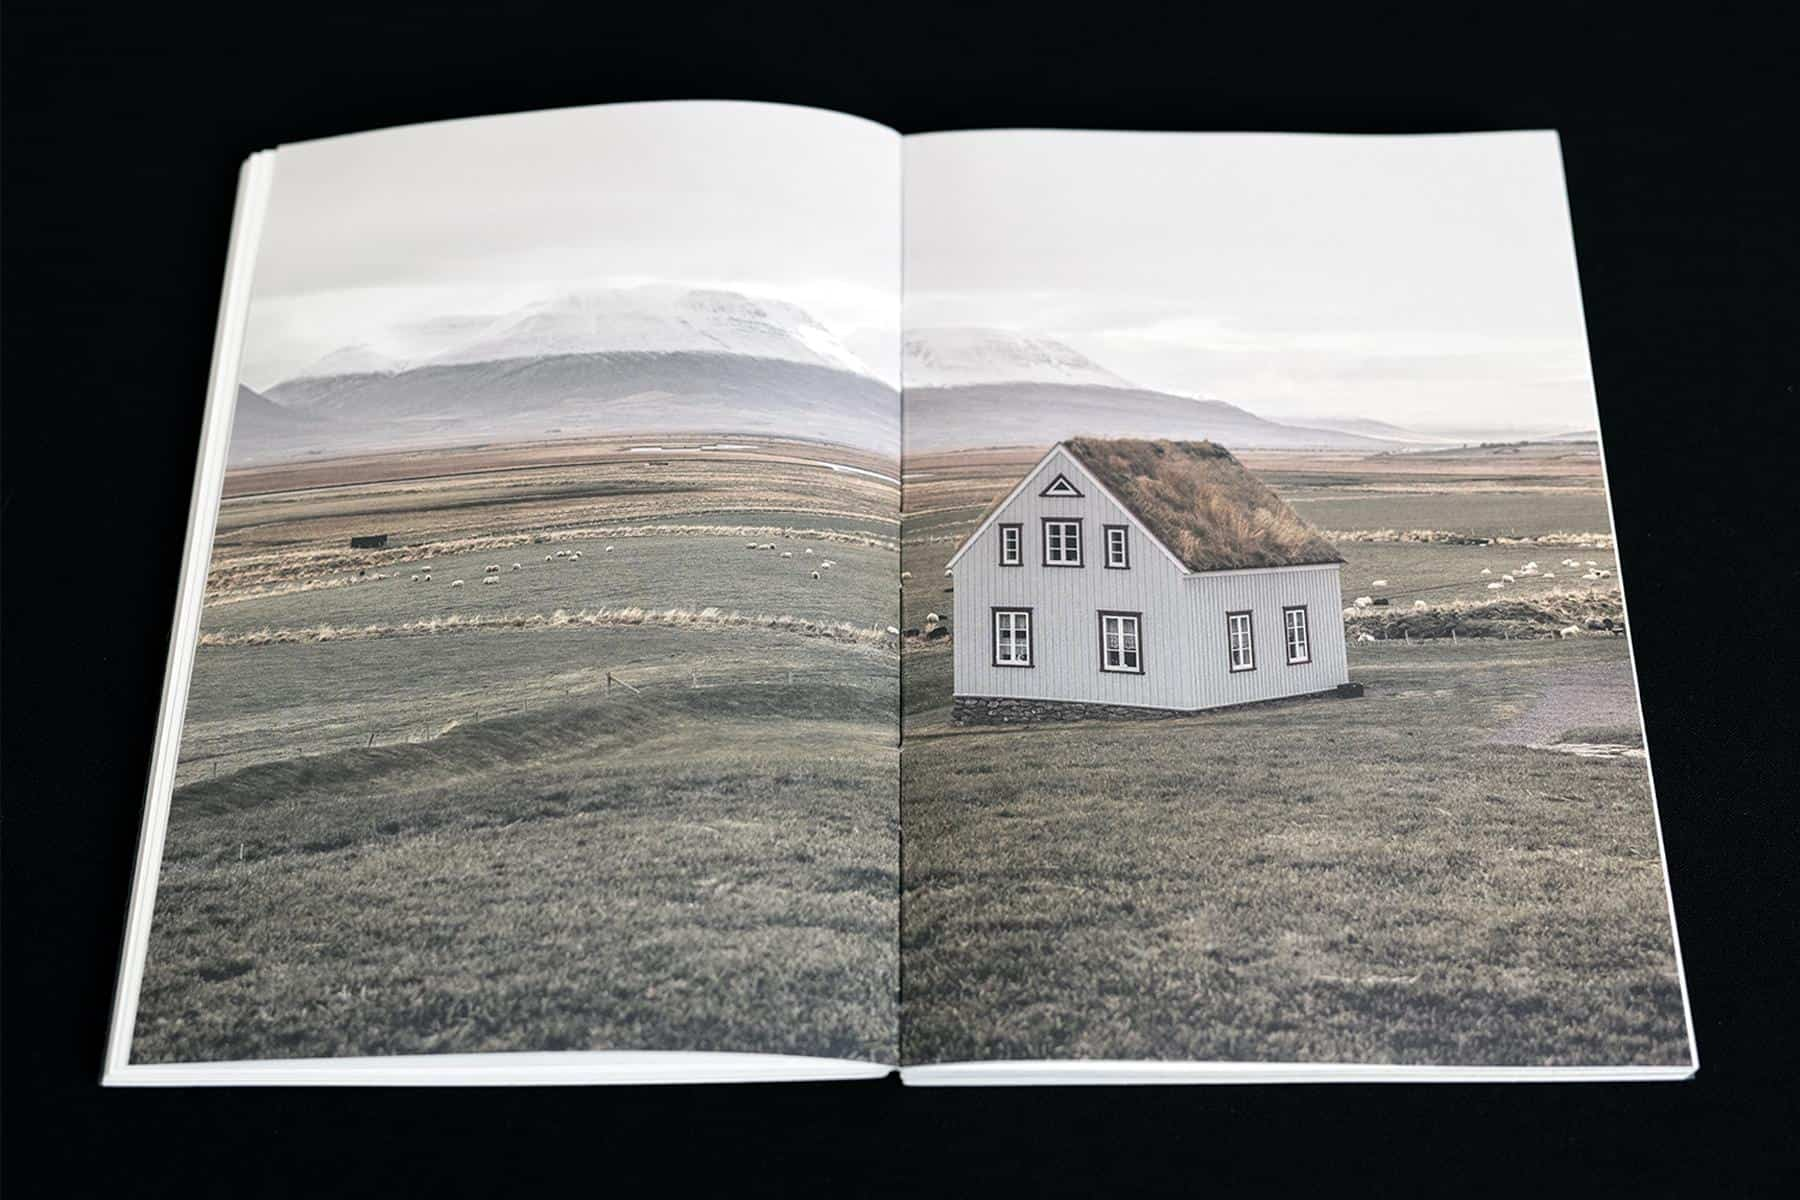 Book Weightless – Tracing Landmarks, House Iceland, 2020 (5) by Photographer Gonçalo Duarte Pacheco